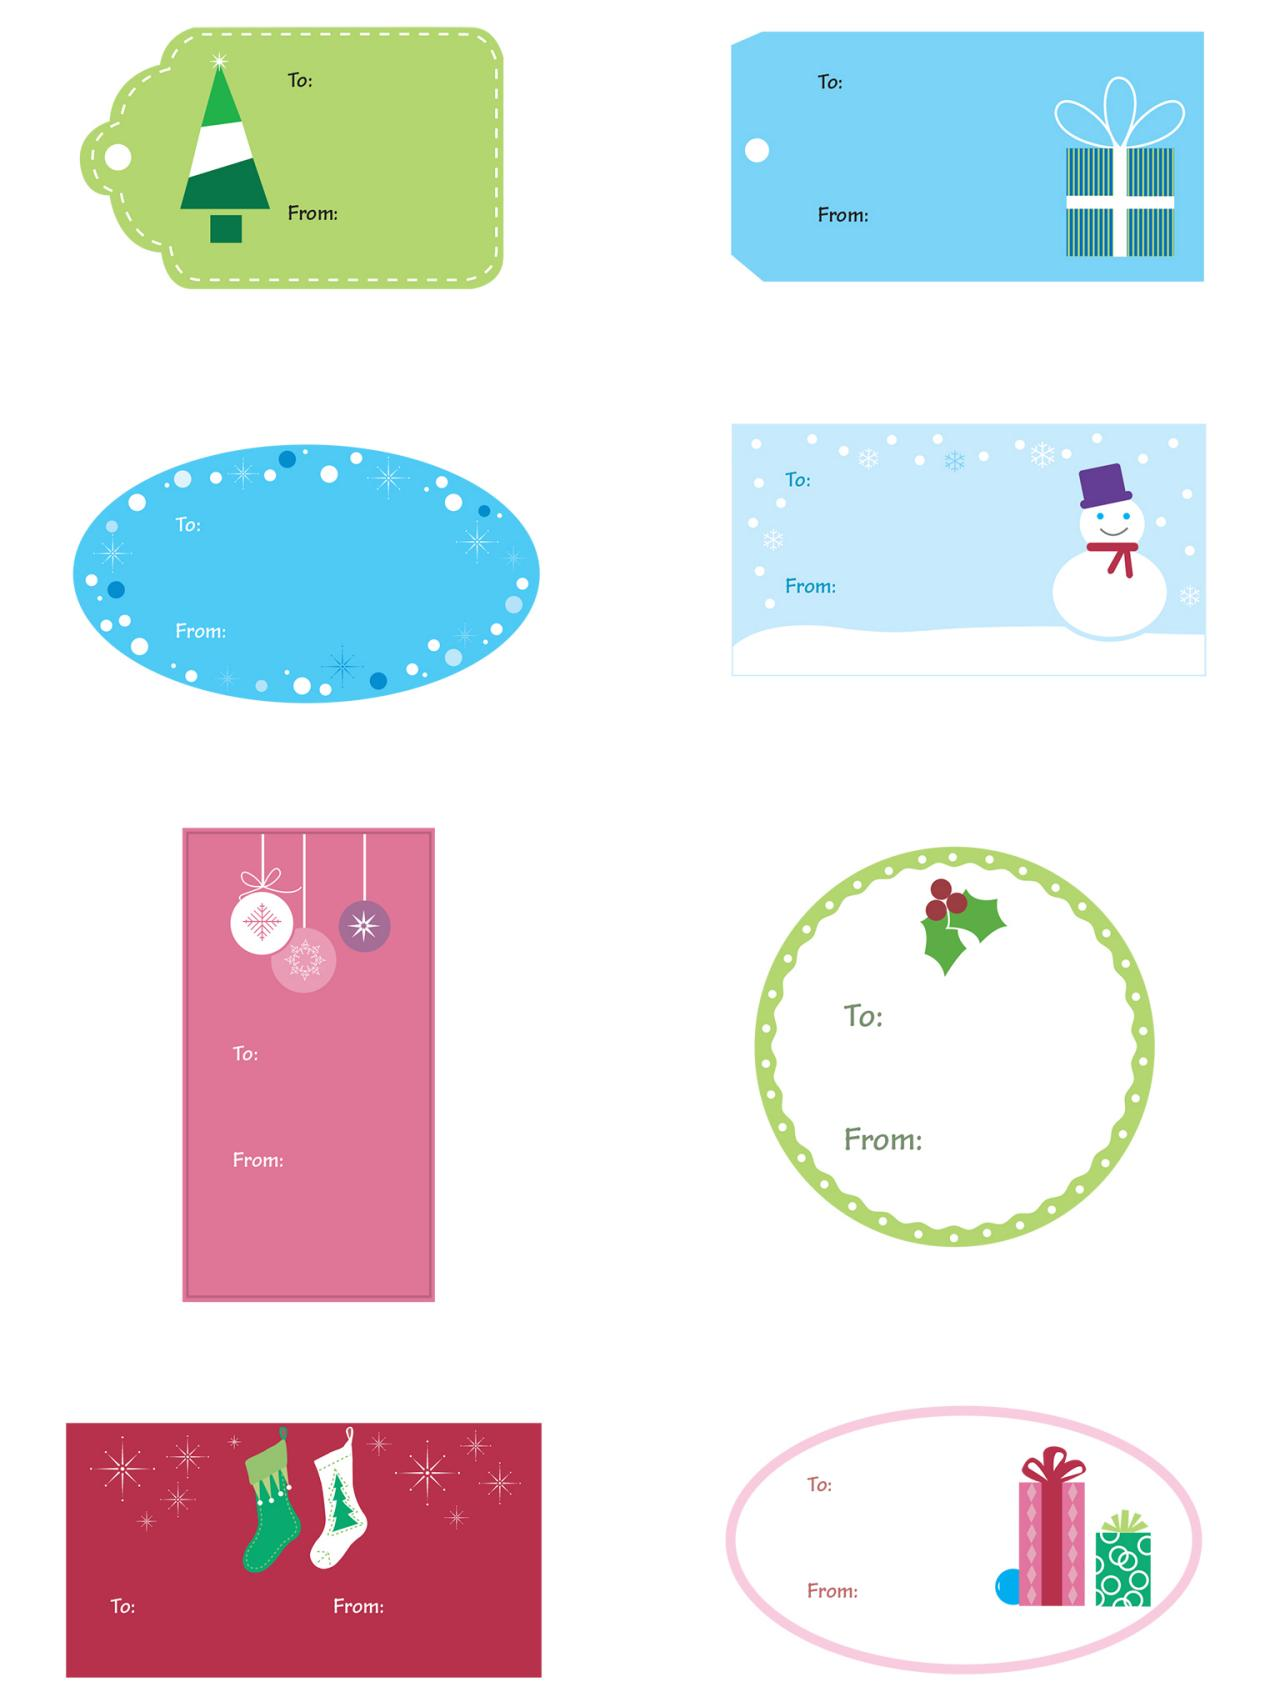 photo regarding Gift Tag Printable Free named Totally free Xmas Templates: Printable Reward Tags, Playing cards, Crafts